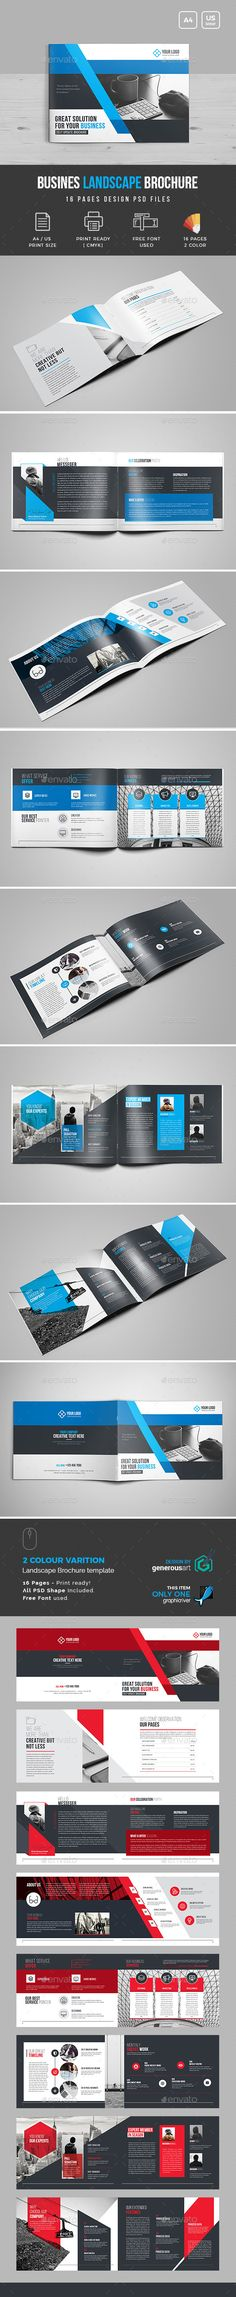 Landscape Bi-Fold Brochure Template - Corporate Brochures Download here : https://graphicriver.net/item/landscape-bifold-brochure-template/19456357?s_rank=64&ref=Al-fatih